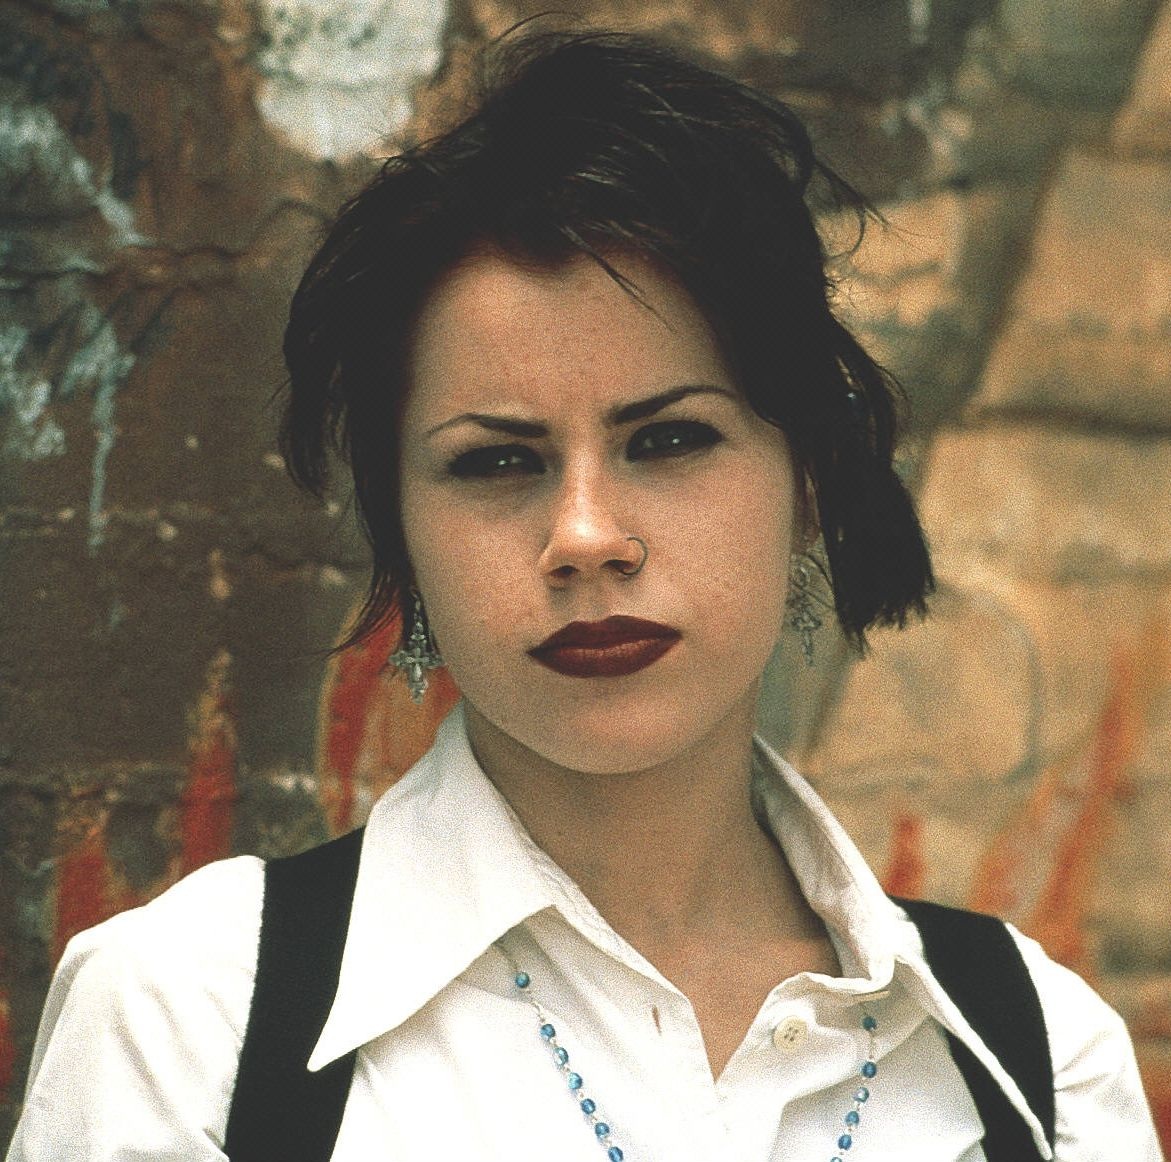 Fairuza Balk As Nancy Downs In The Craft The Craft Movie Nancy The Craft Fairuza Balk